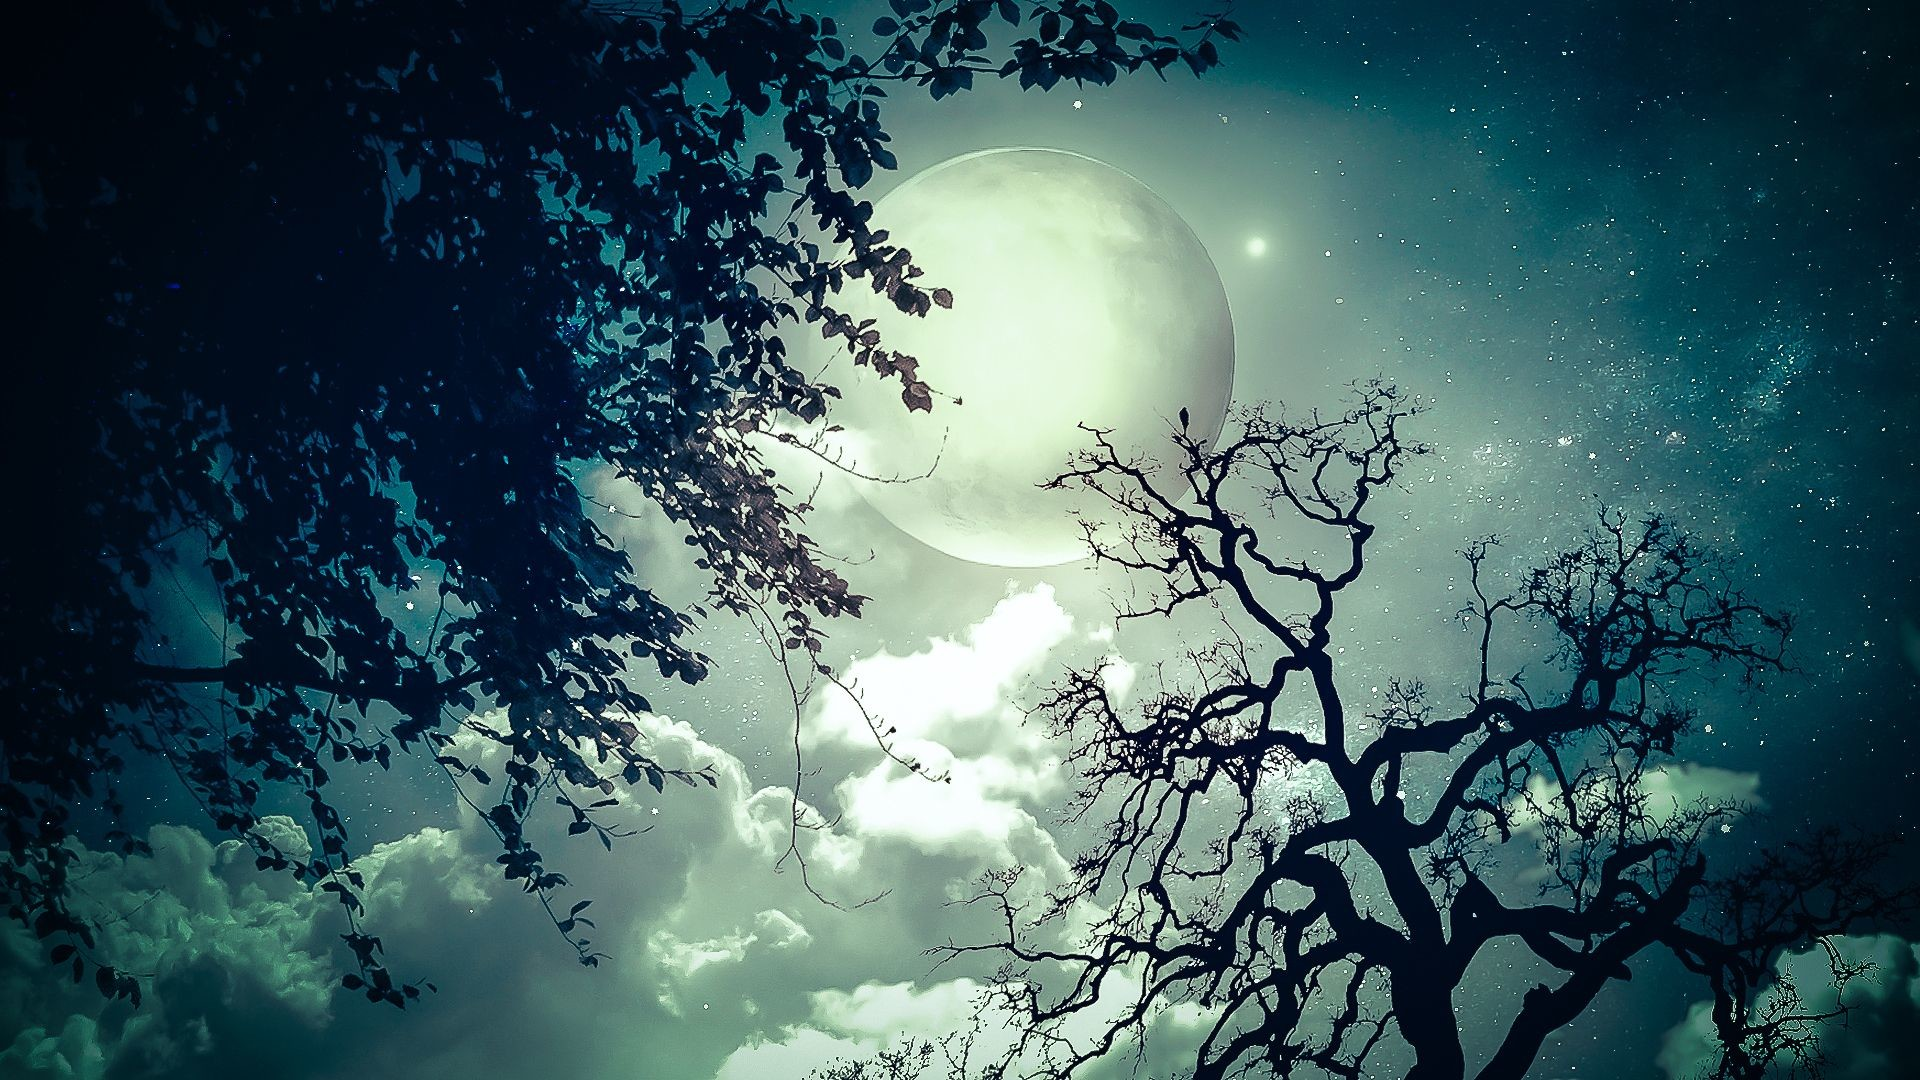 Hd Wallpapers Widescreen 1080p 3d - Trees And The Moon - HD Wallpaper